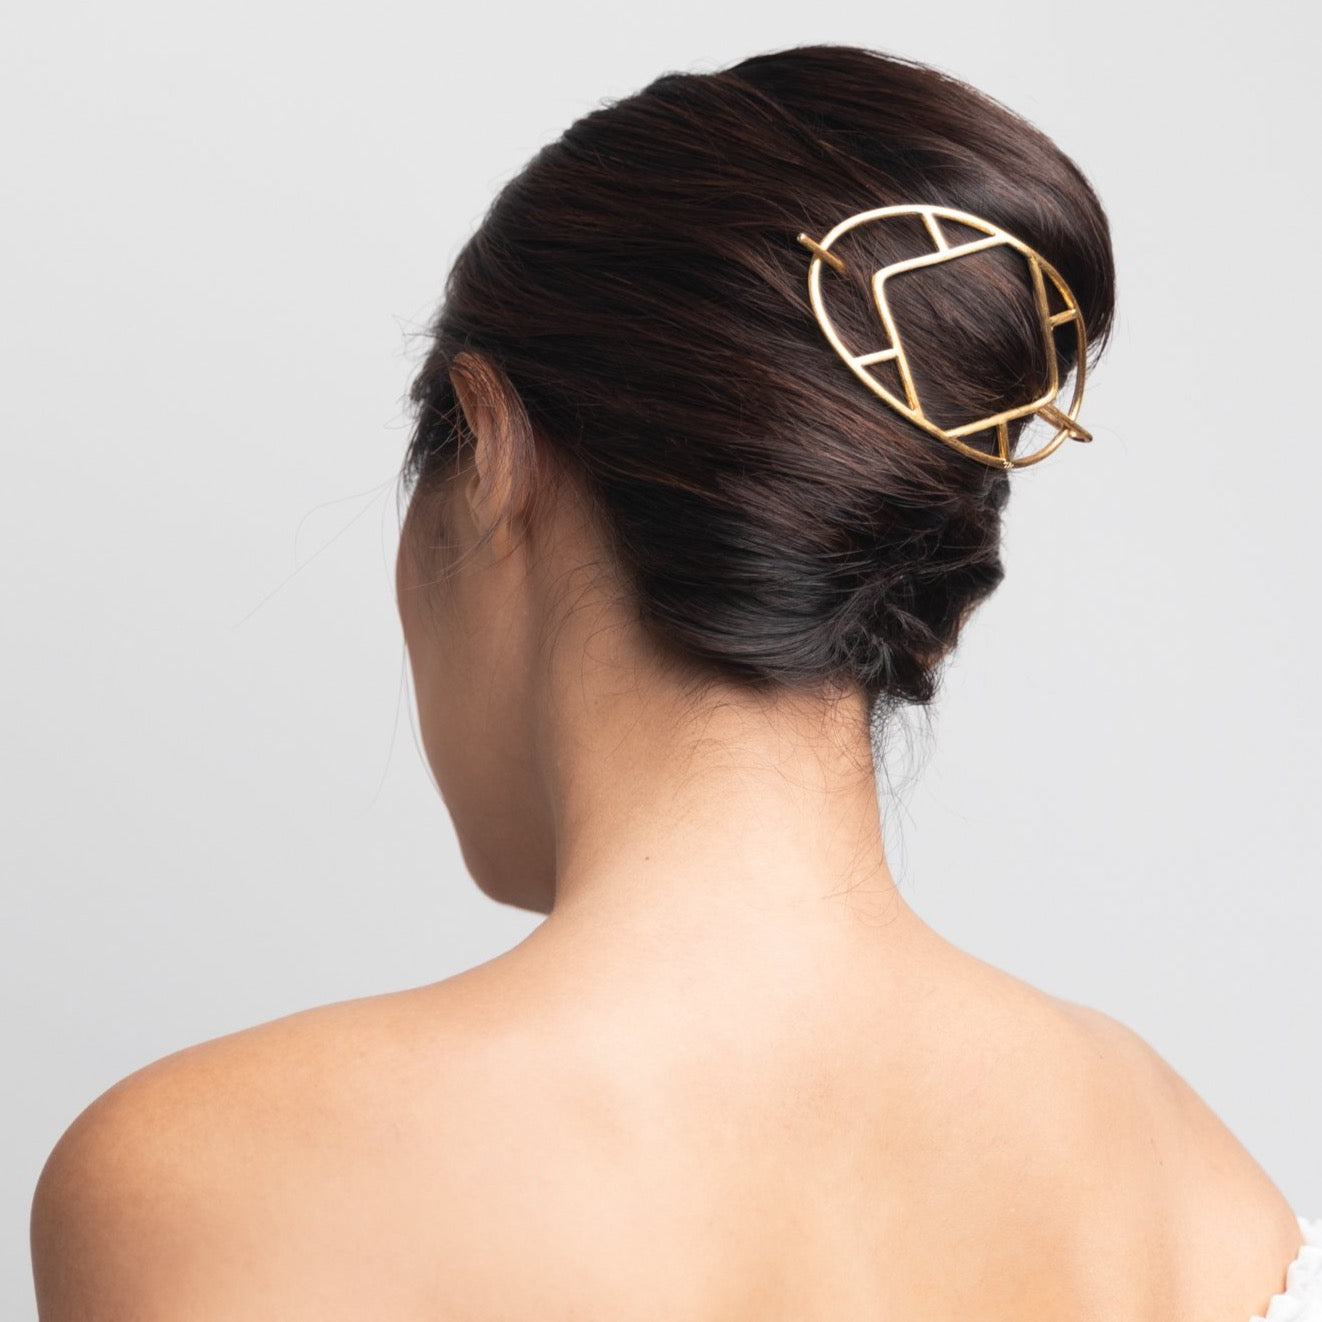 hairpin hairclip accessory barrette